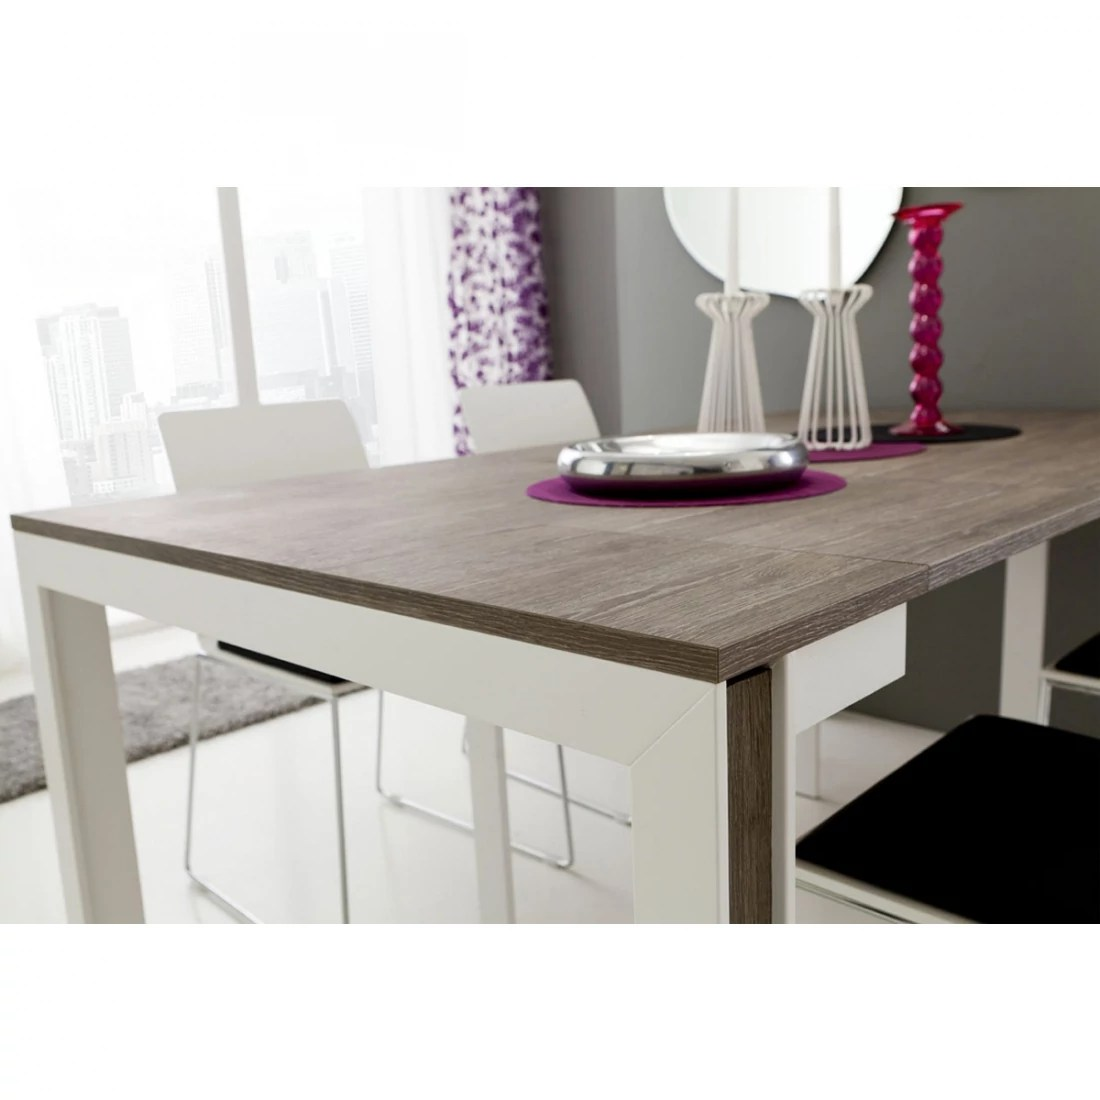 Table Console Extensible Design Table Console Extensible Design Mattia Zendart Design